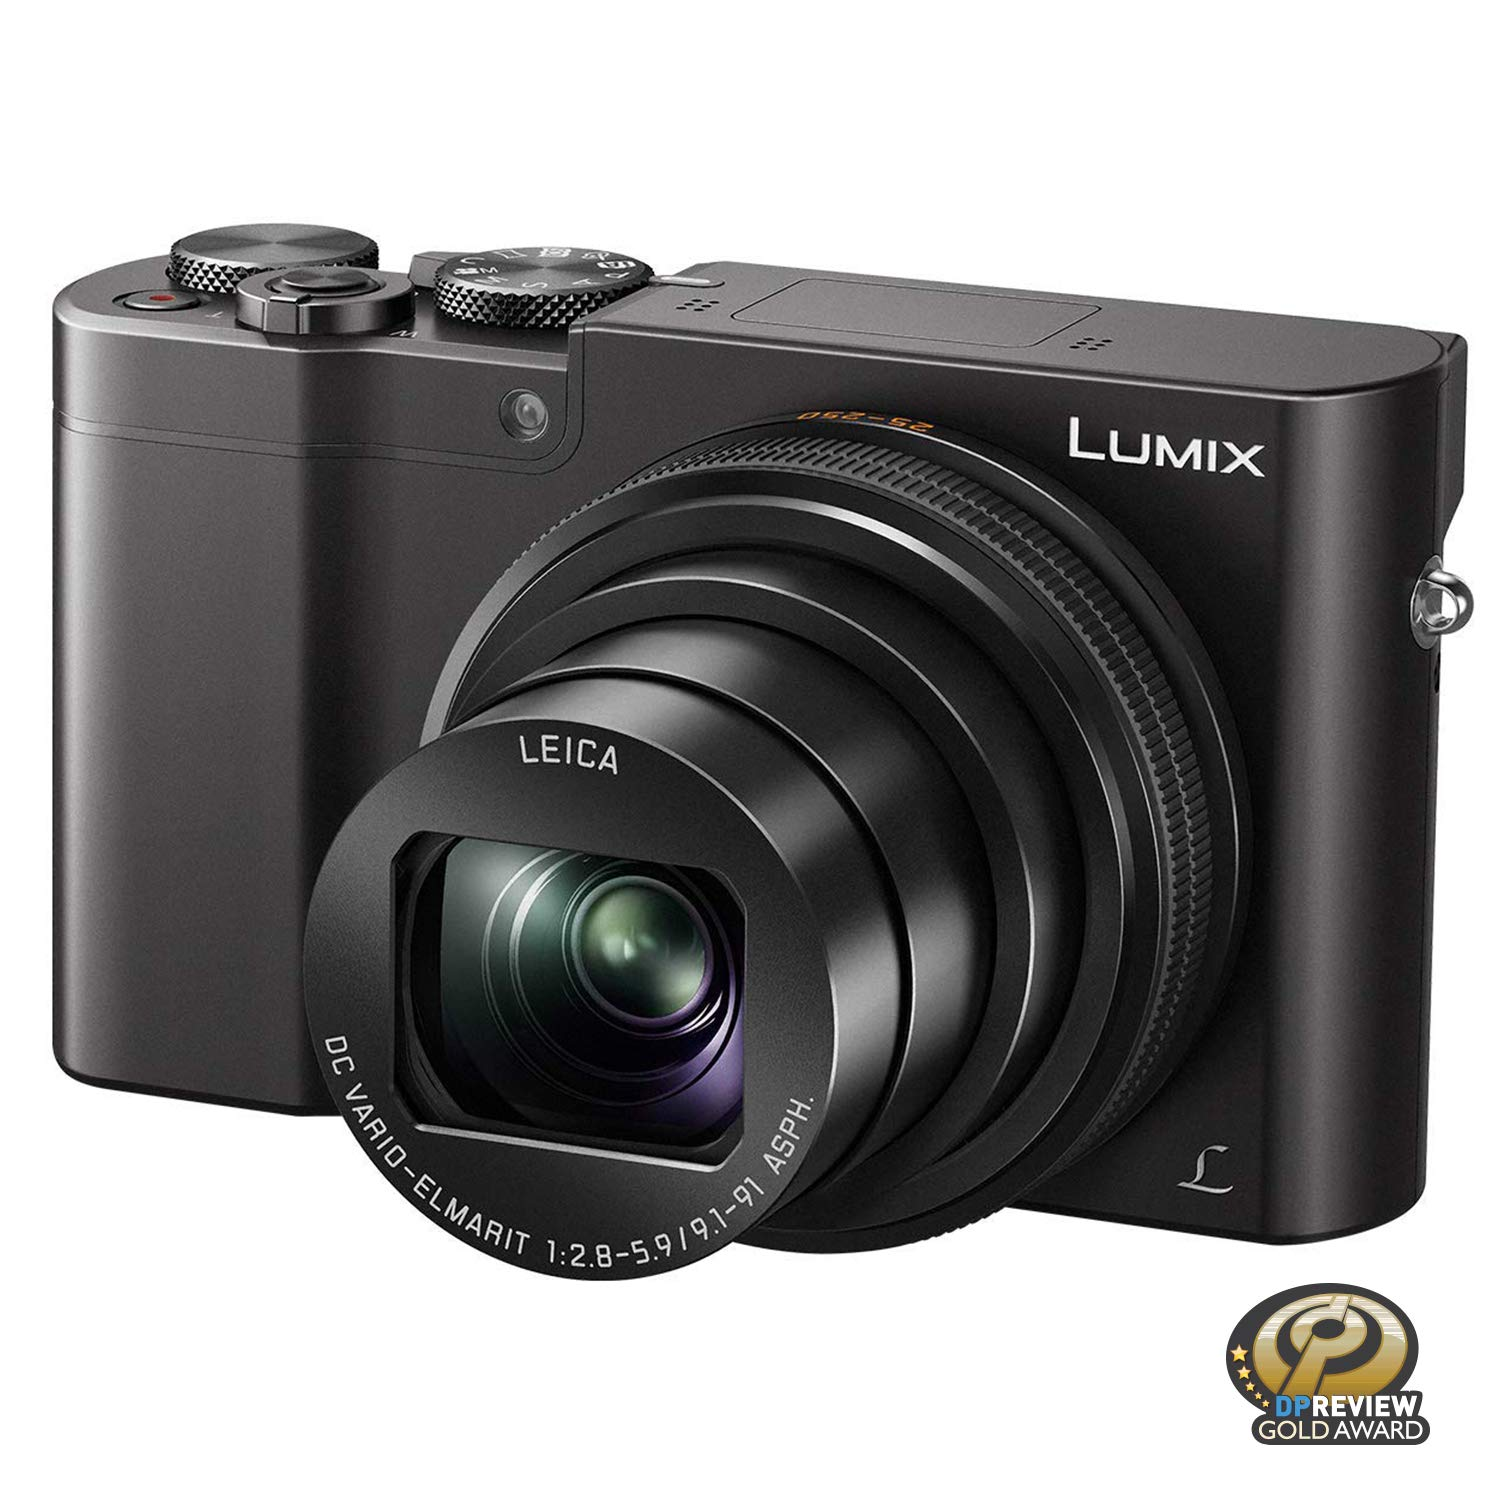 PANASONIC LUMIX ZS100 4K Digital Camera, 20.1 Megapixel 1-Inch Sensor 30p Video Camera, 10X LEICA DC VARIO-ELMARIT Lens, F2.8-5.9 Aperture, HYBRID O.I.S. Stabilization, 3-Inch LCD, DMC-ZS100K (Black) by Panasonic